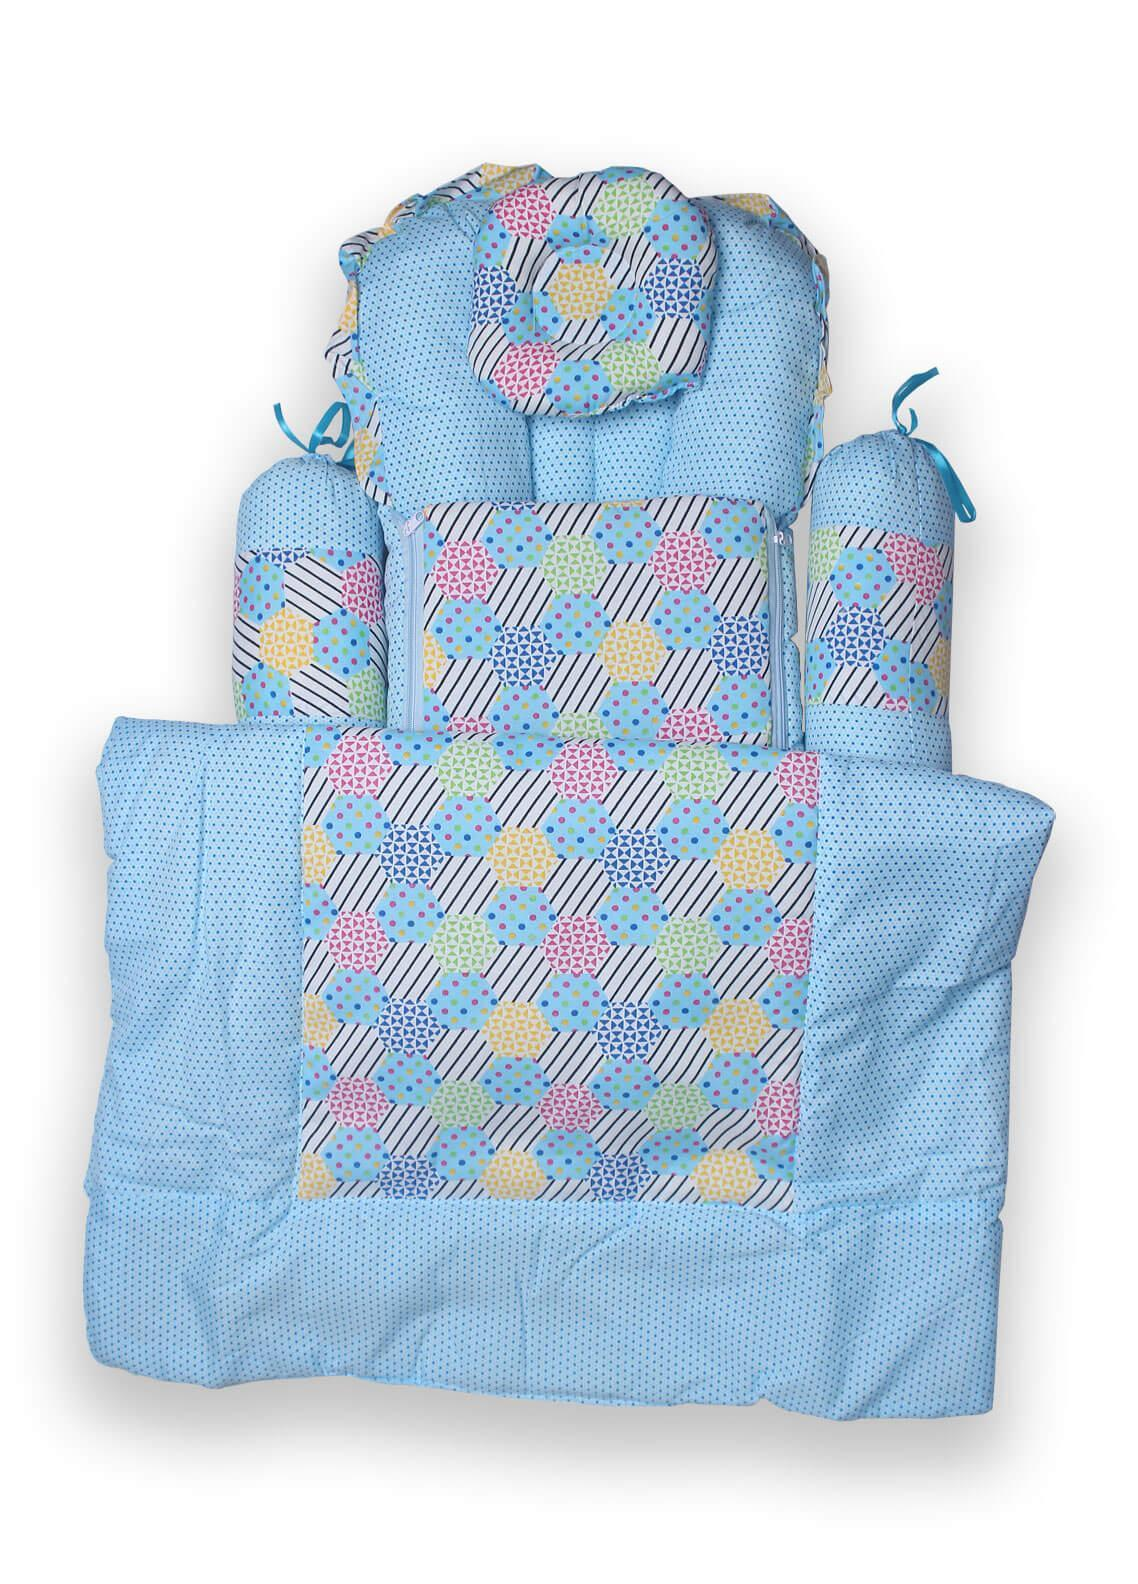 Plush Mink  Fiber Baby Set 7 Pieces PEEKABOO 7 PIECES BABY SET Blue - Baby Products